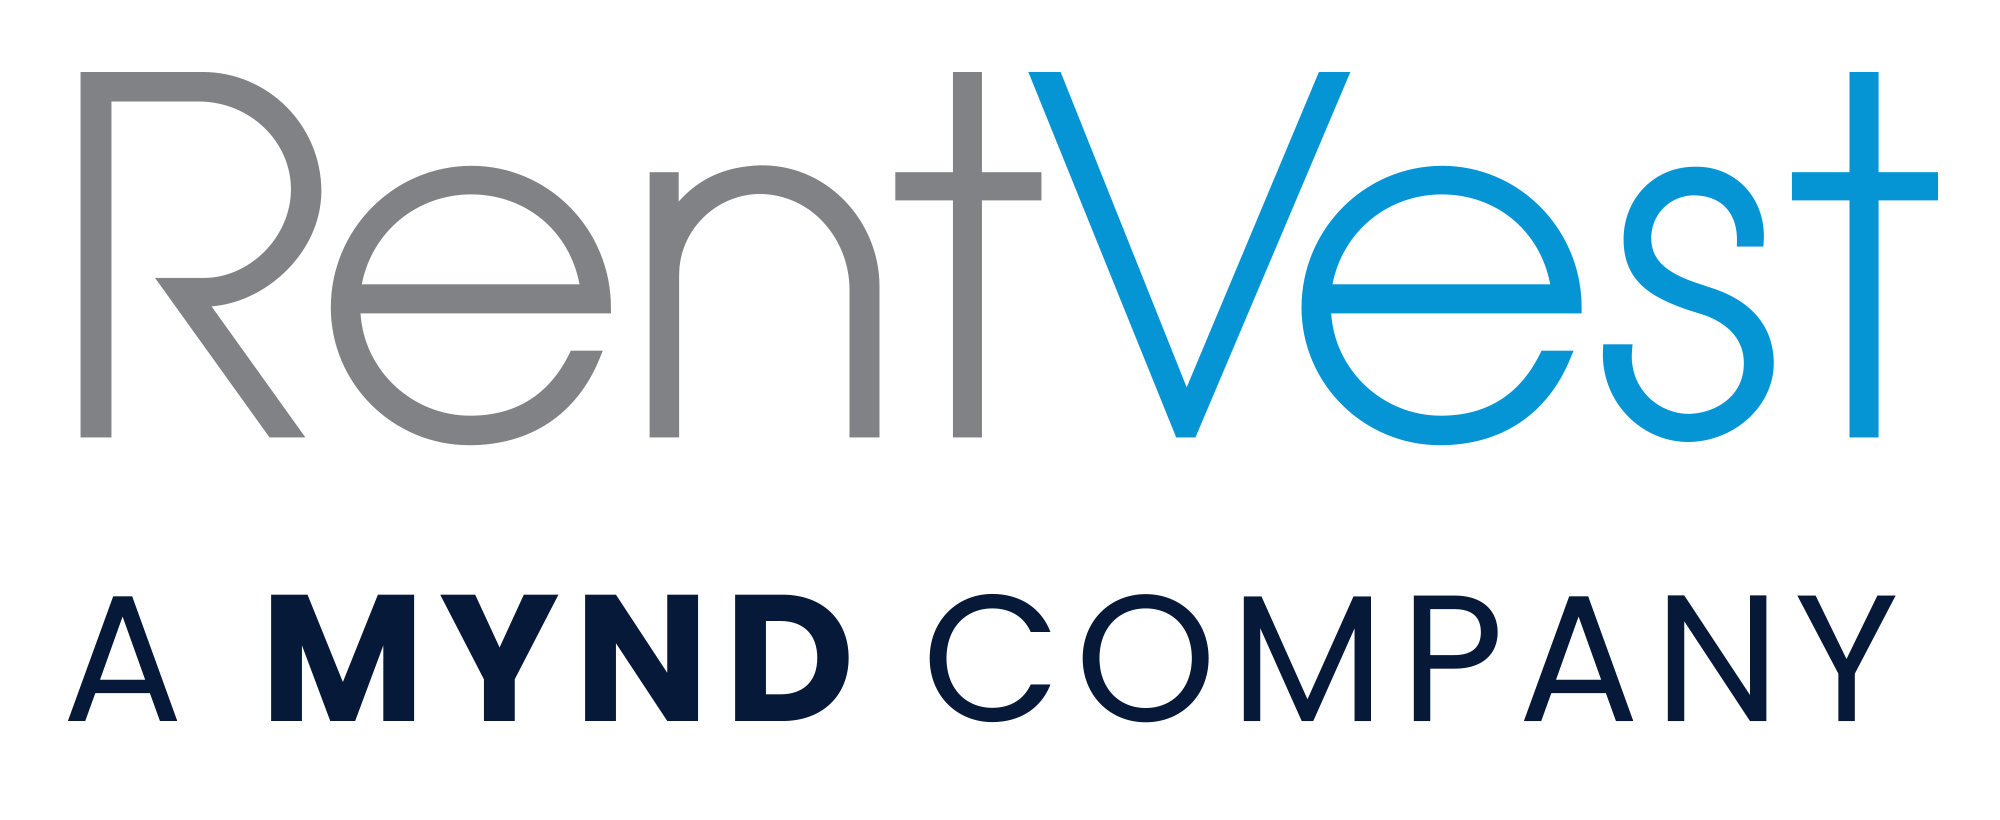 Mynd Management merges with RentVest